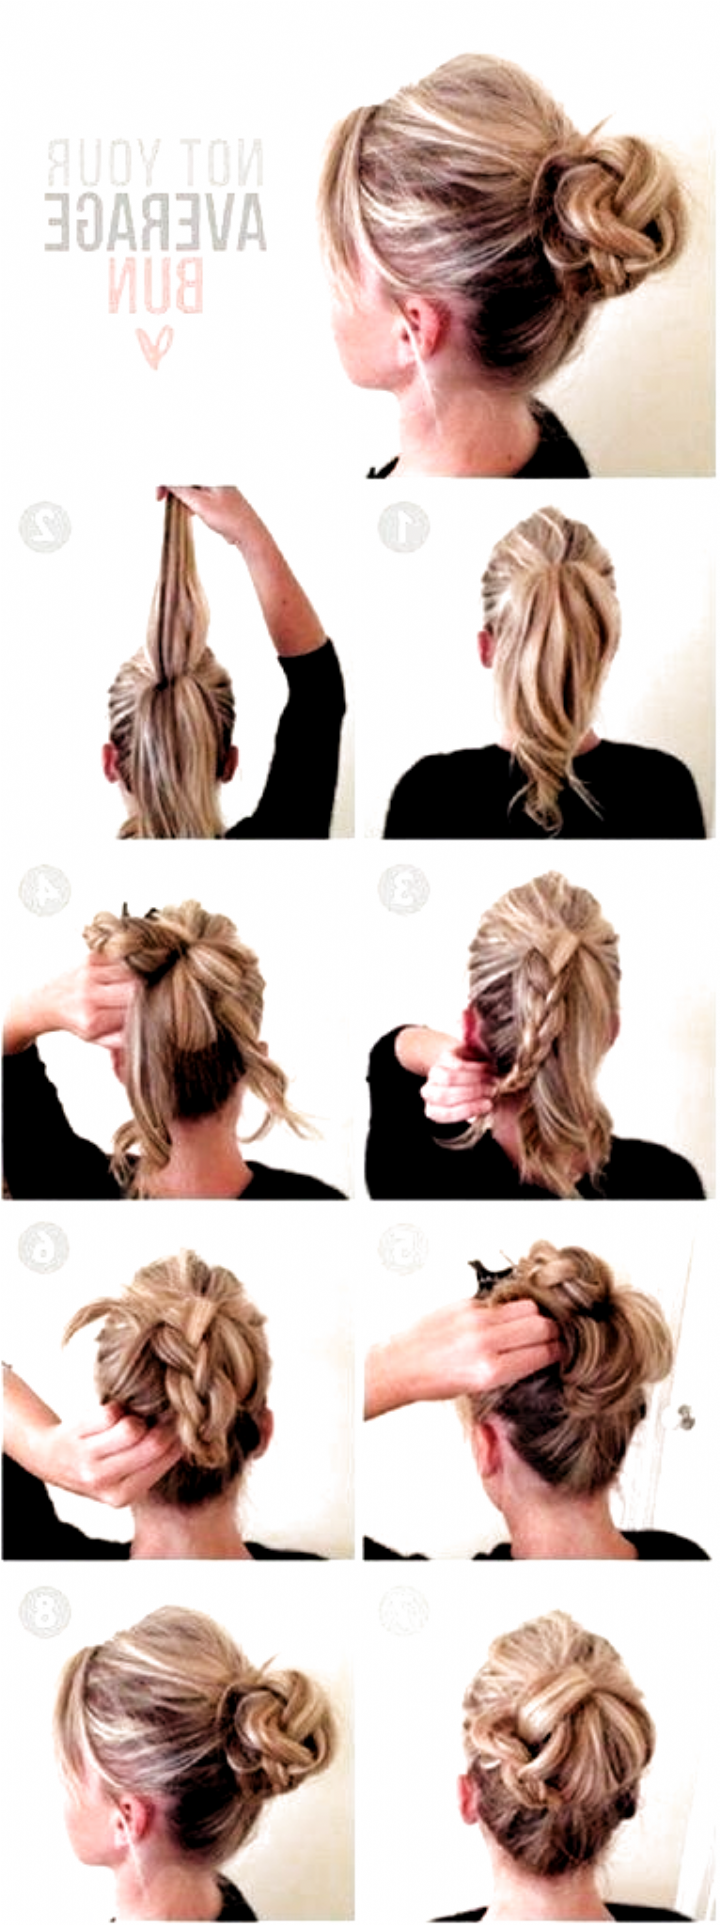 Pin On Long Hair Style